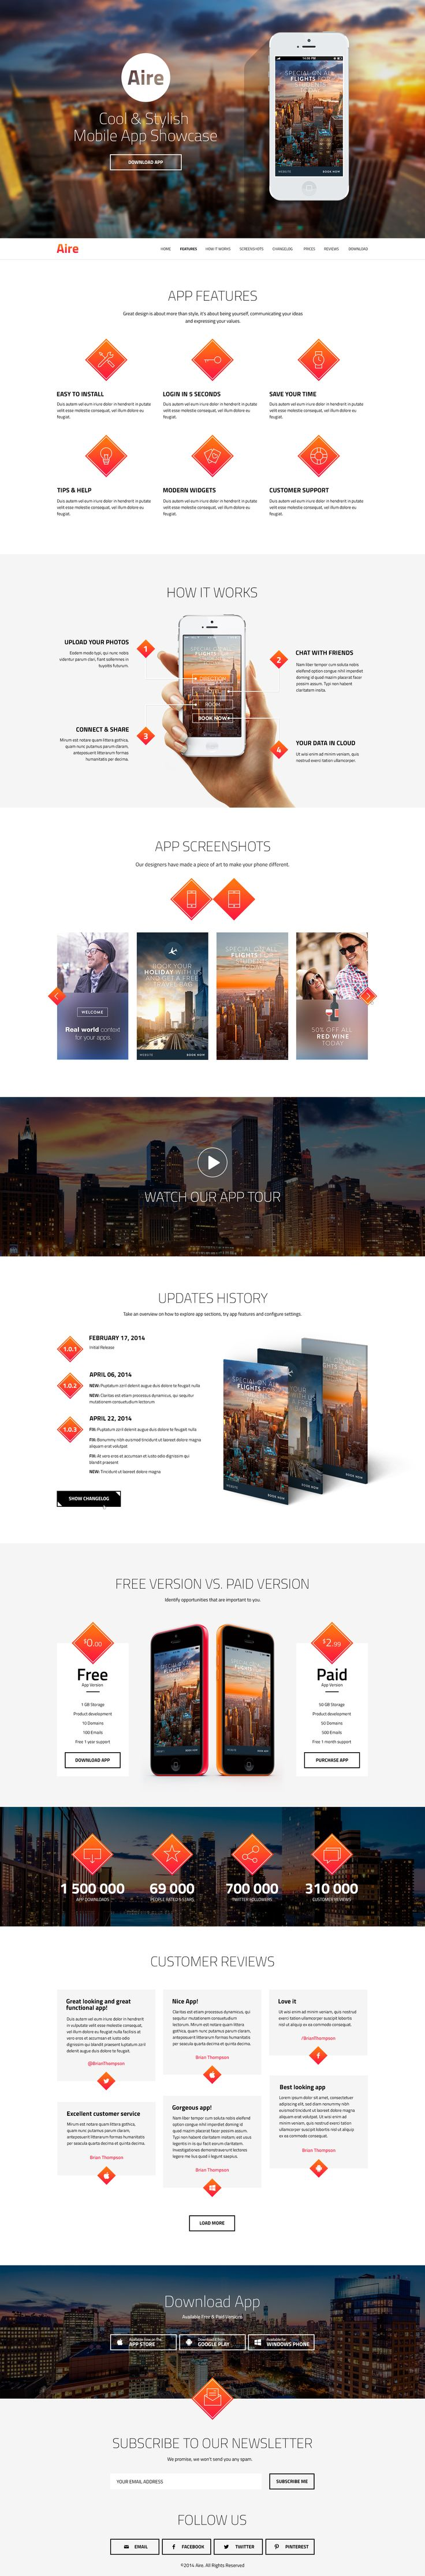 Aire - App Landing Page HTML5/Less Template | Buy and Download: http://themeforest.net/item/aire-app-landing-page-html5less-template/8376097?WT.ac=category_thumb&WT.z_author=Bareve&ref=ksioks